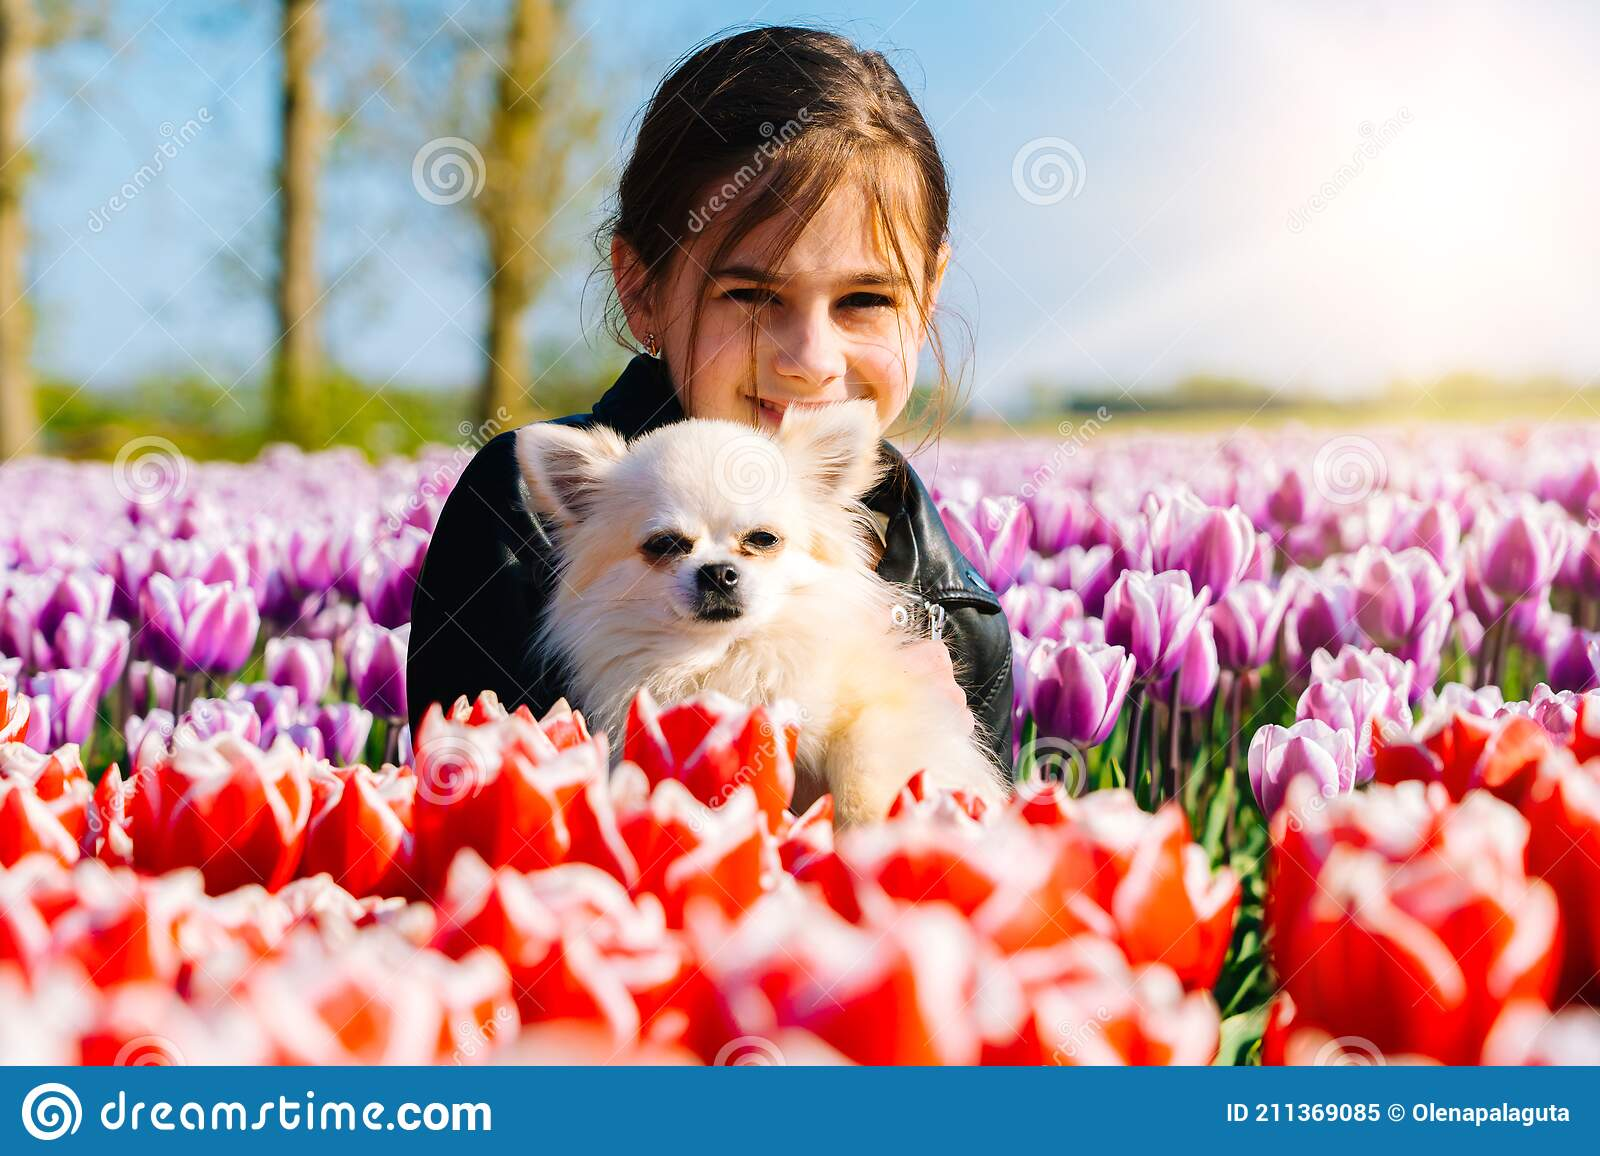 Cute Teen Girl With Long Hair Smelling Tulip Flower On